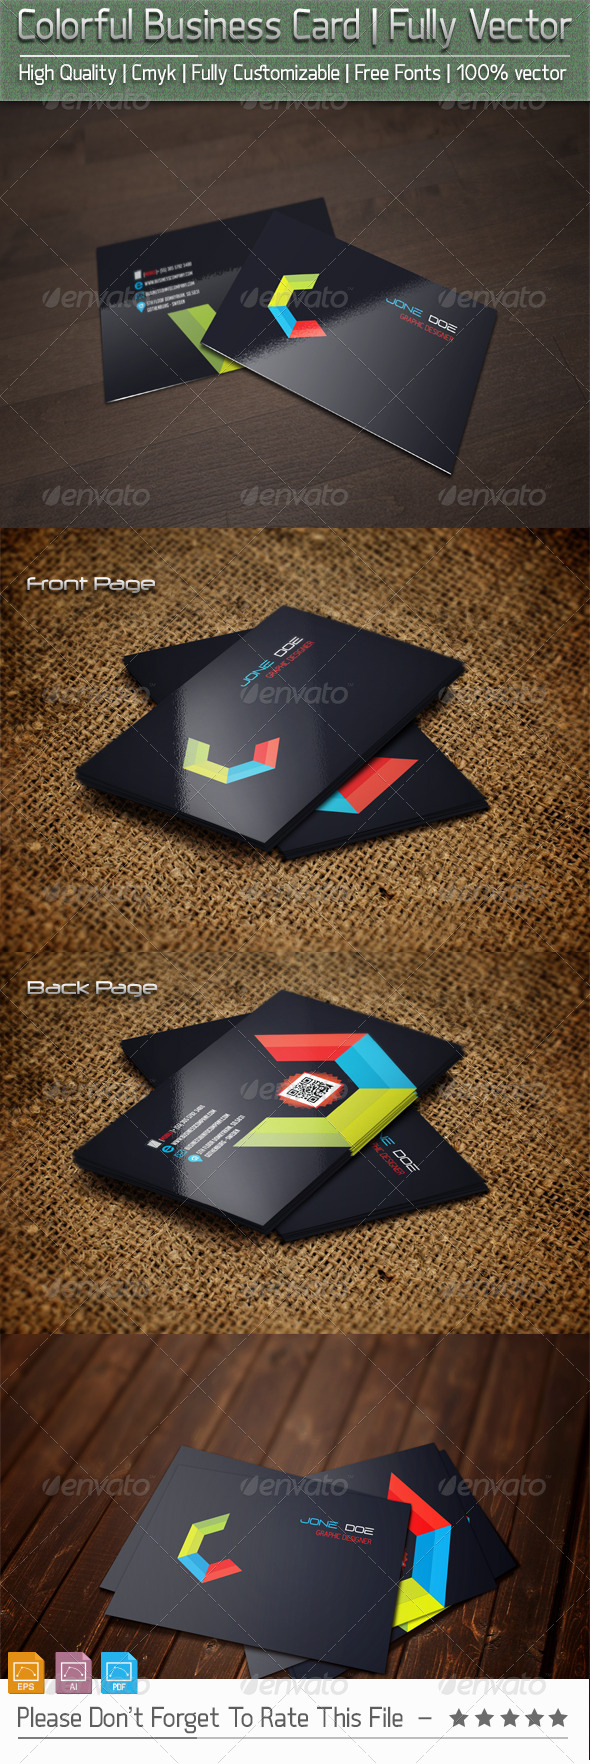 GraphicRiver colorfulBusinessCard v1 5639591